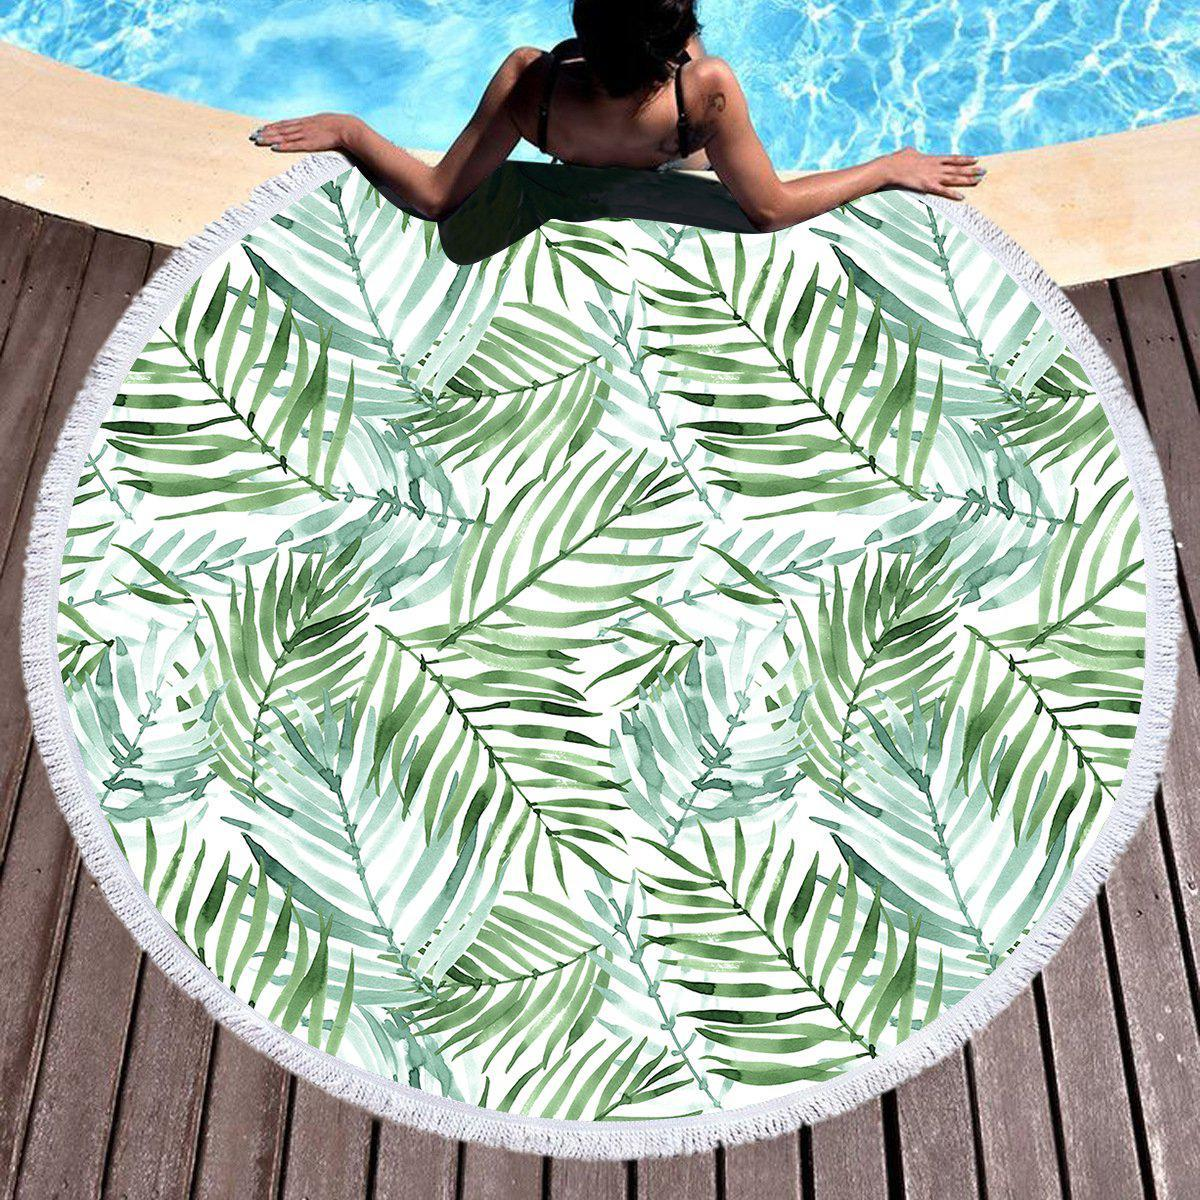 Tropical Palm Leaves Round Beach Towel